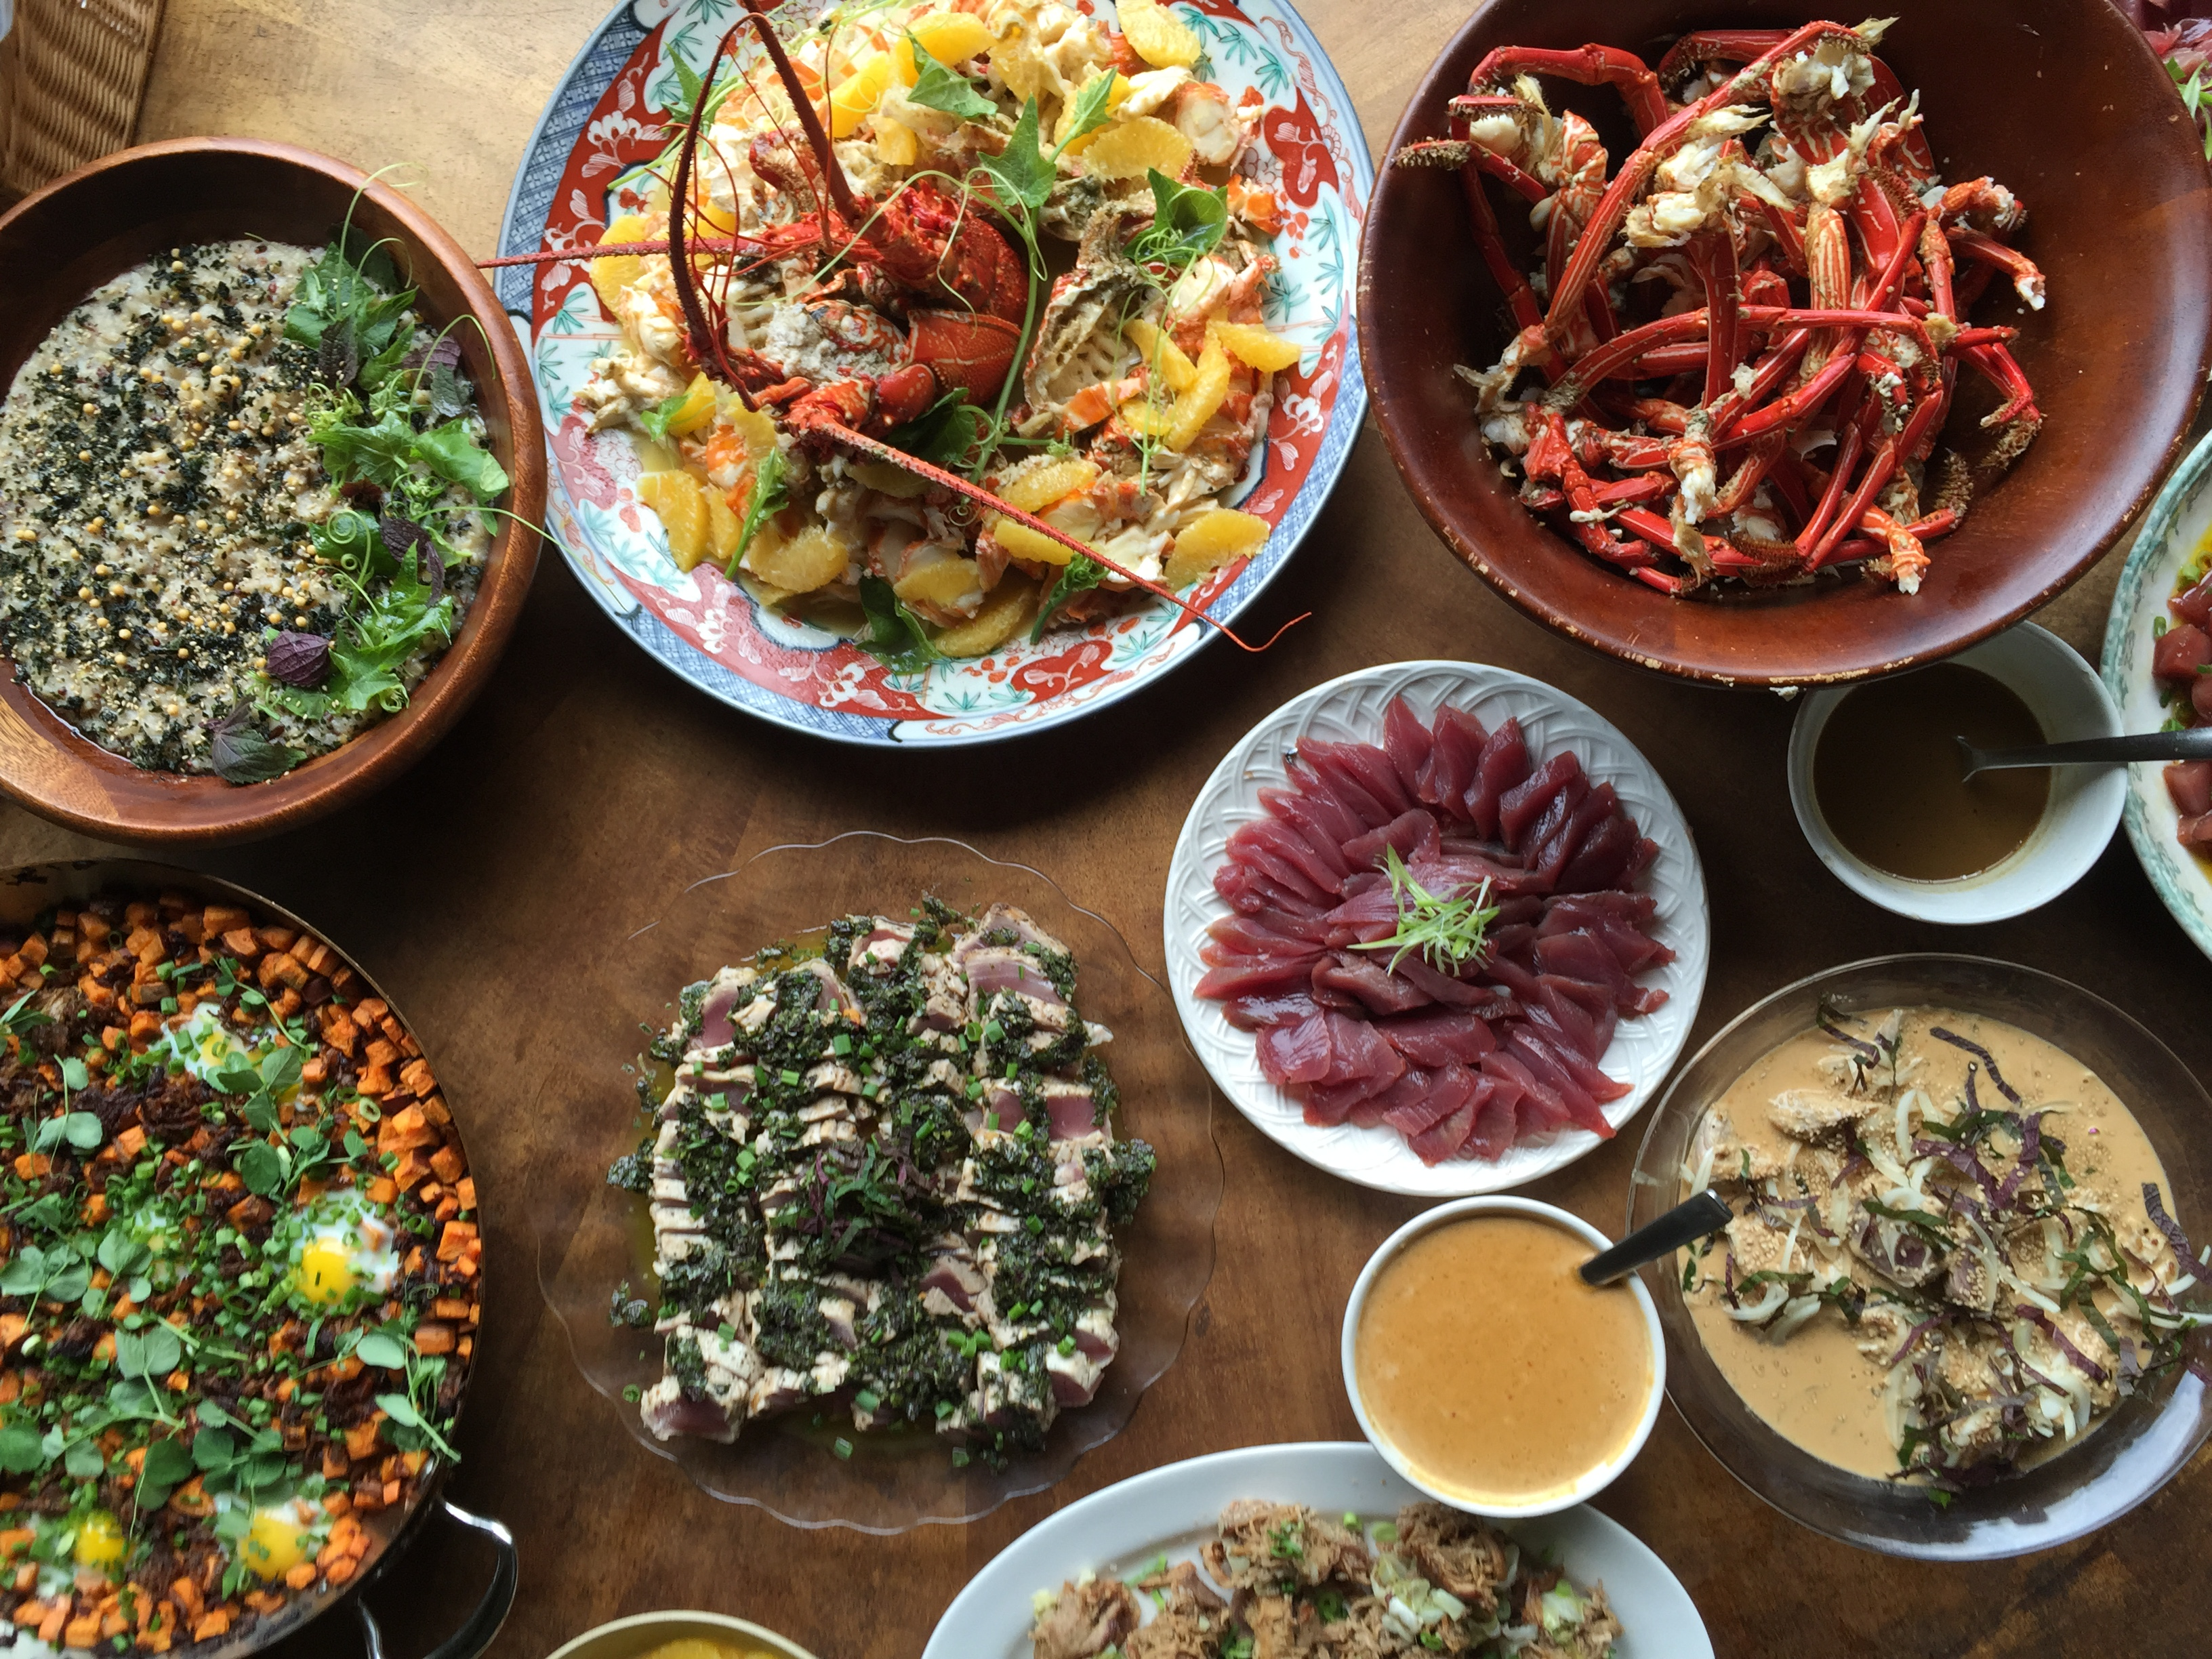 A Hāna Kū brunch spread that's almost too pretty to eat...well, almost.